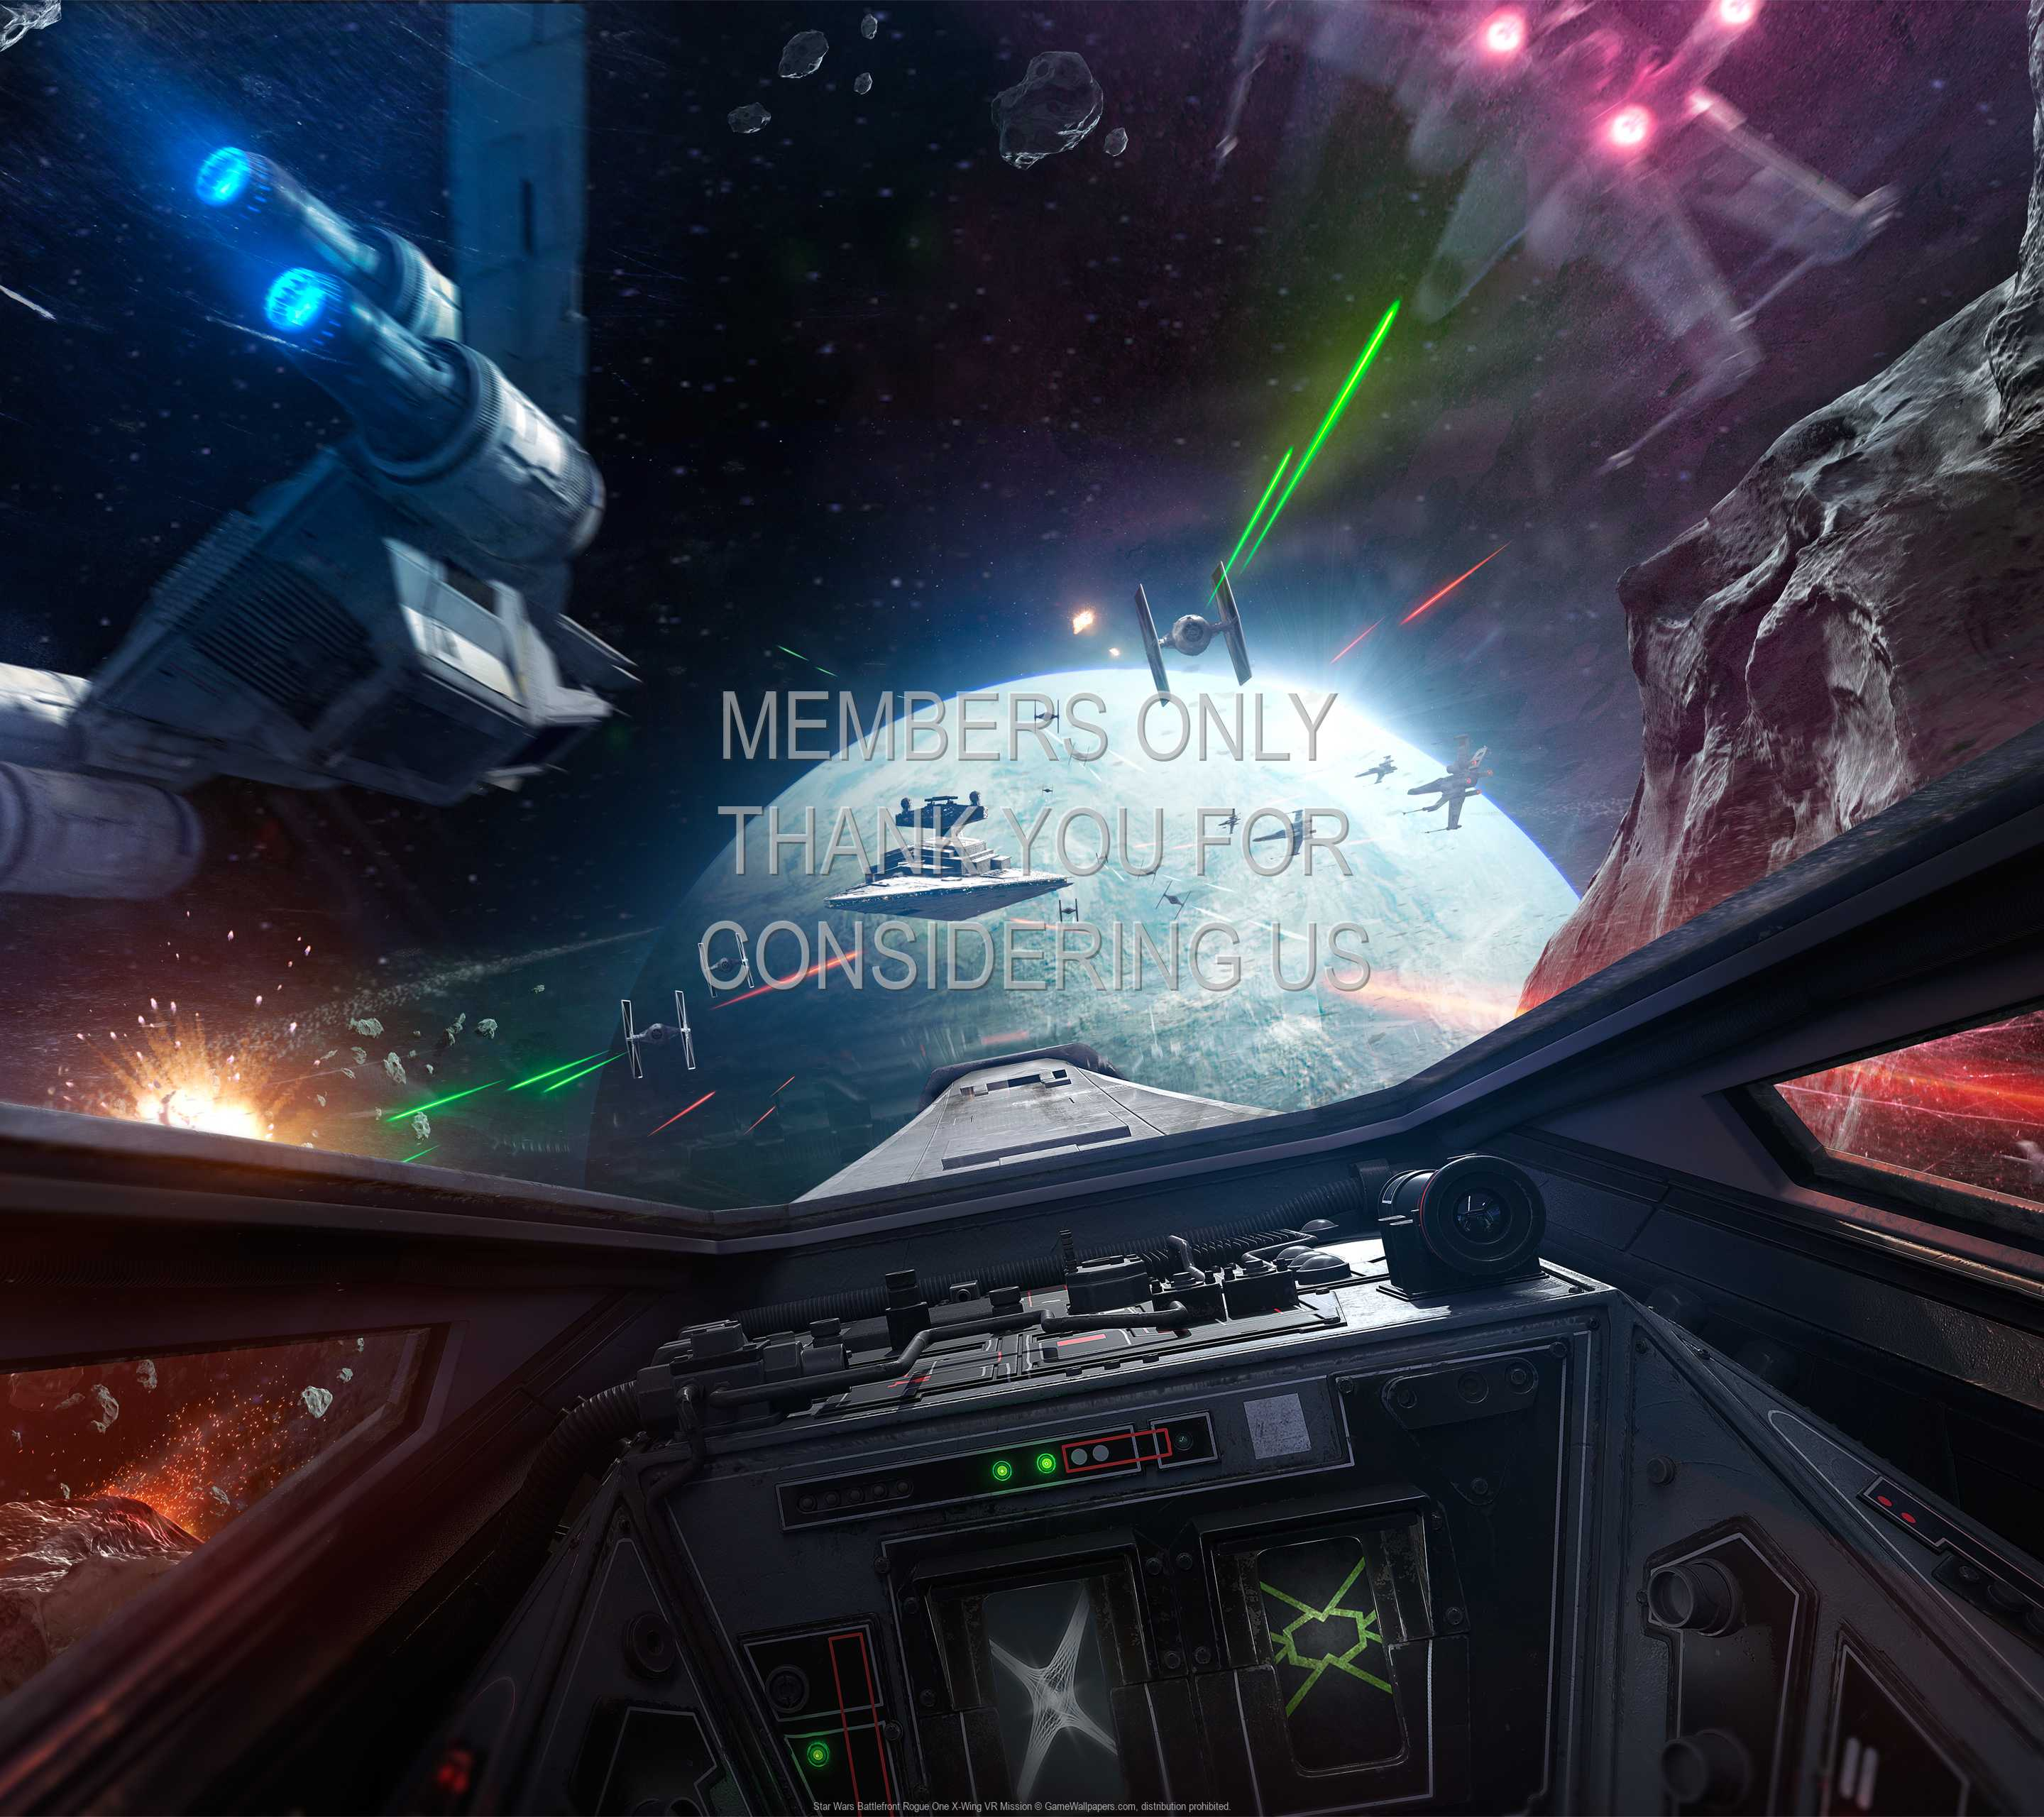 Star Wars Battlefront Rogue One X Wing Vr Mission Wallpaper 01 1440p Horizontal